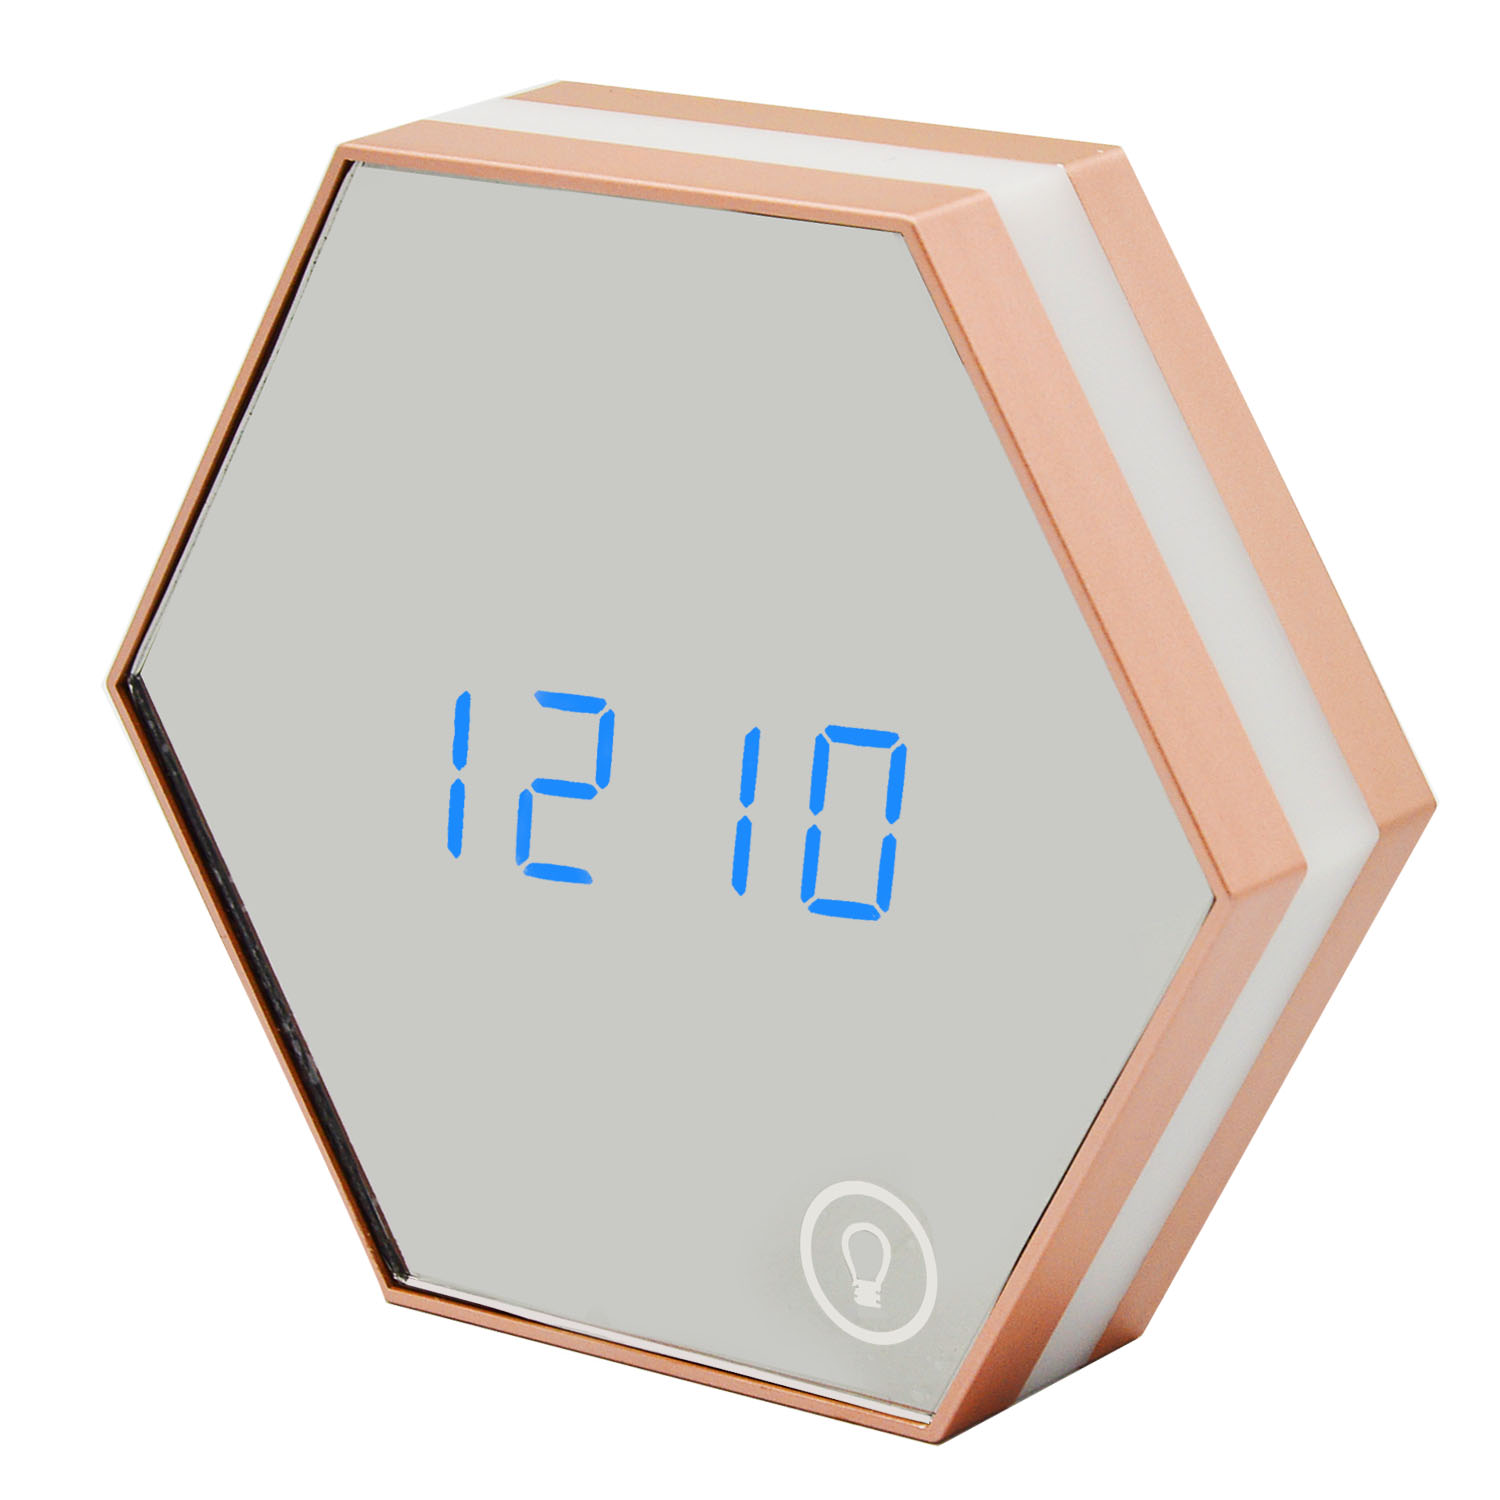 Toko Multifunction Electronic Alarm Clock Portable Hexagon Digital Mirror Alarm Clock Rechargeable Touch Led Night Light Wall Lamp Display Time Temperature For Desk Living Room Children *d*lt Bedroom Champagne Color Intl Murah Di Tiongkok